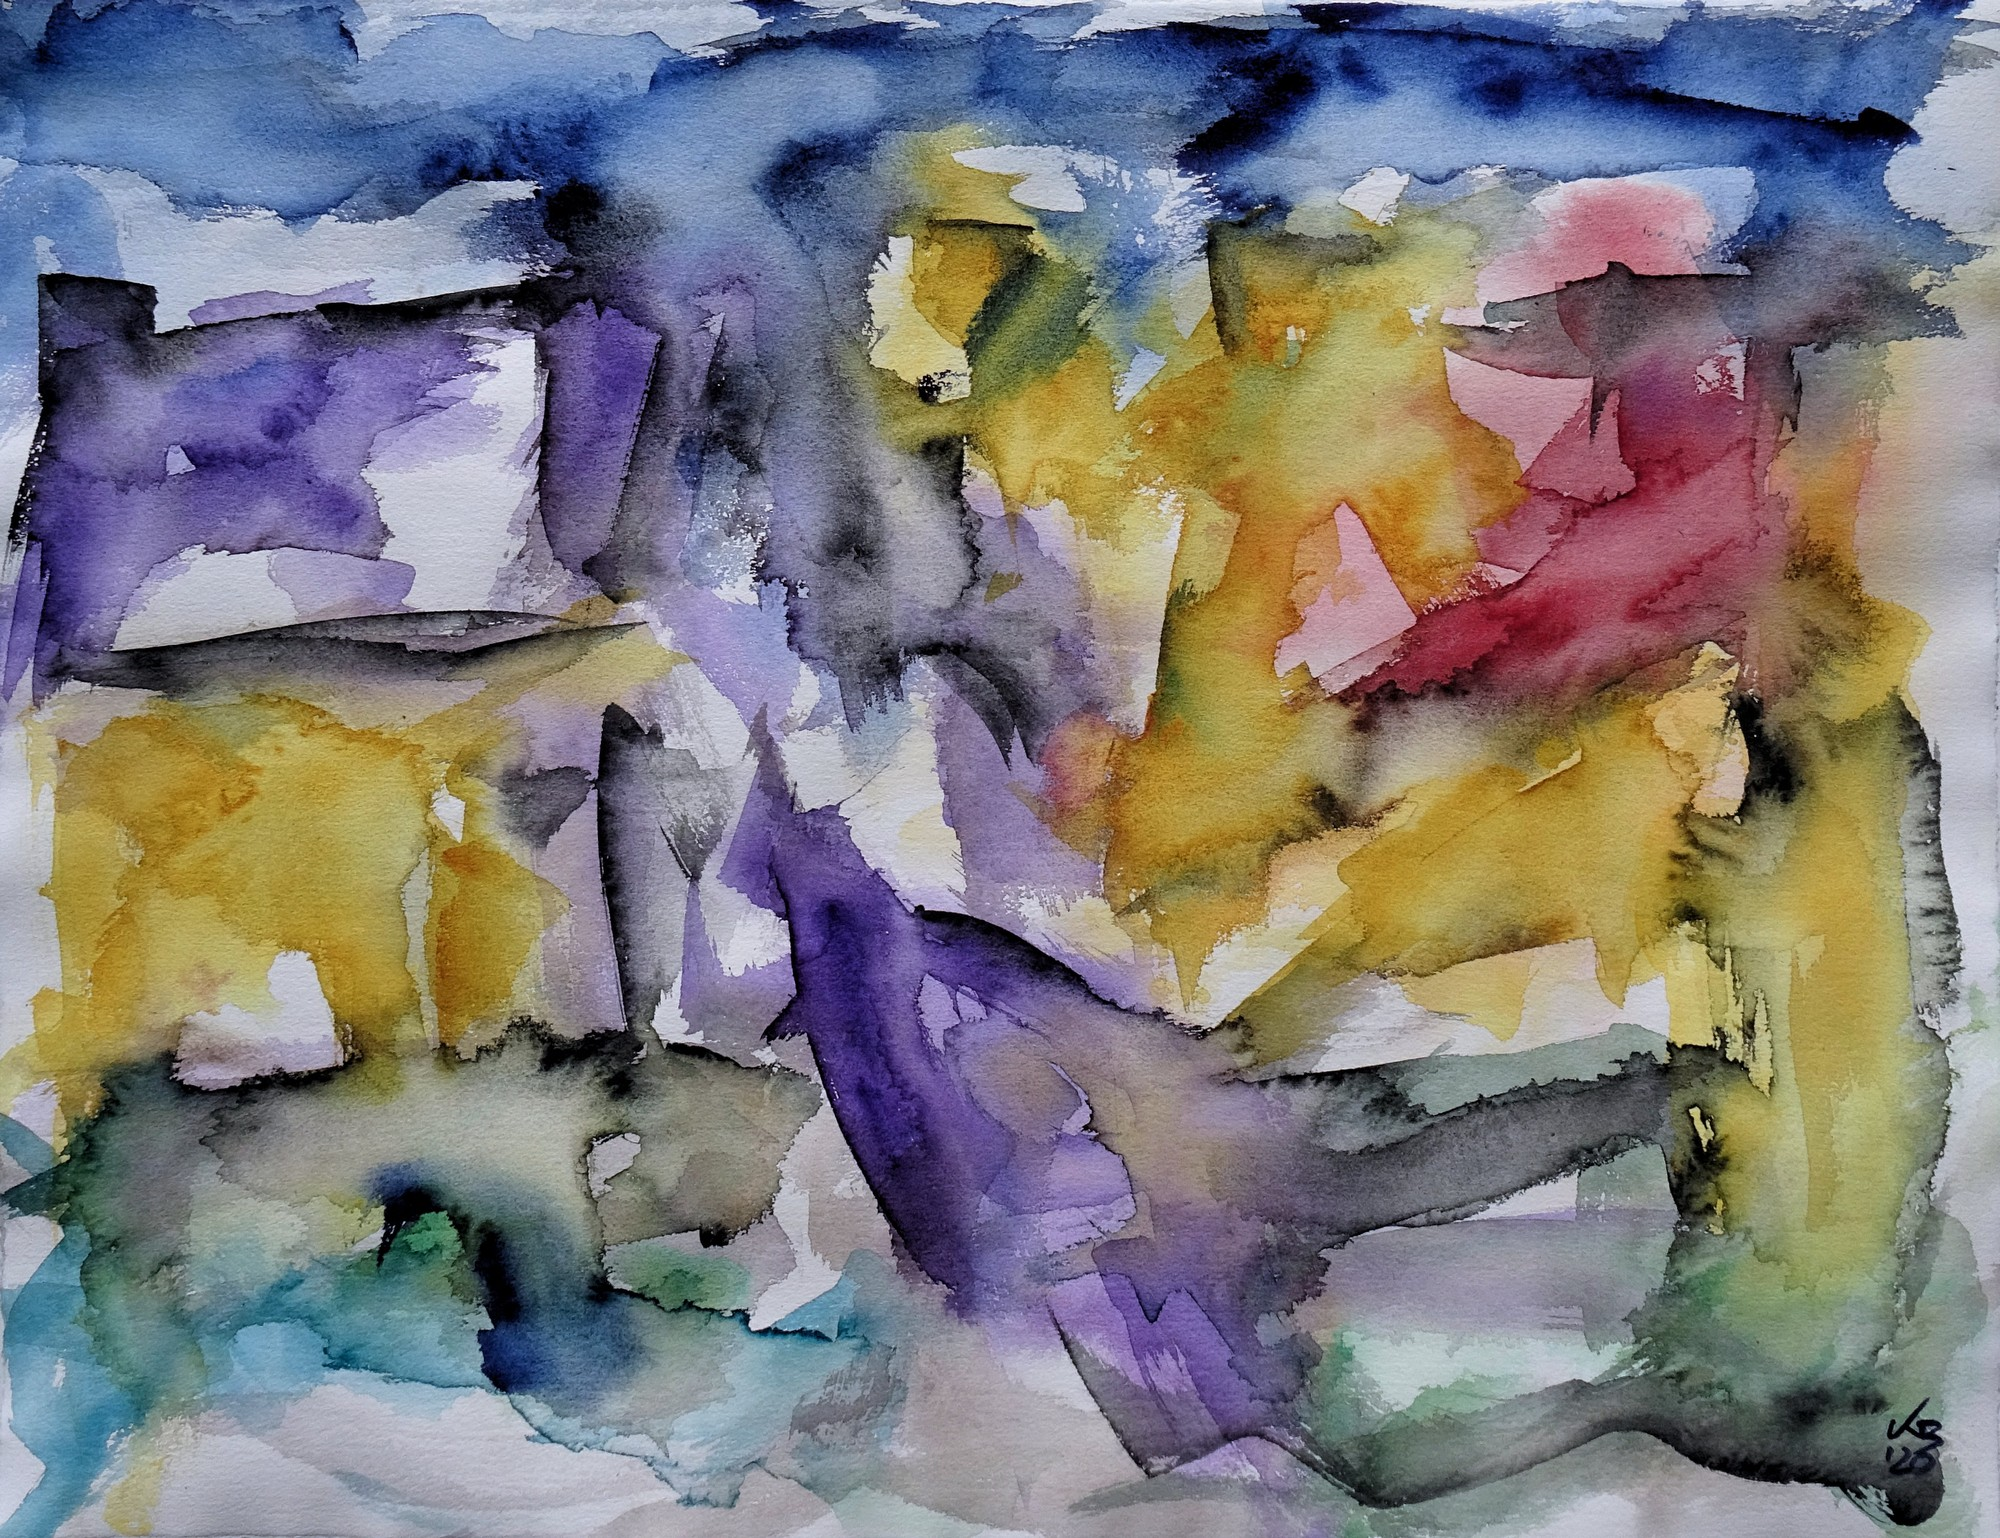 Stromness, Graham Place, Watercolour 65 x 50 cm, © 2020 by Klaus Bölling